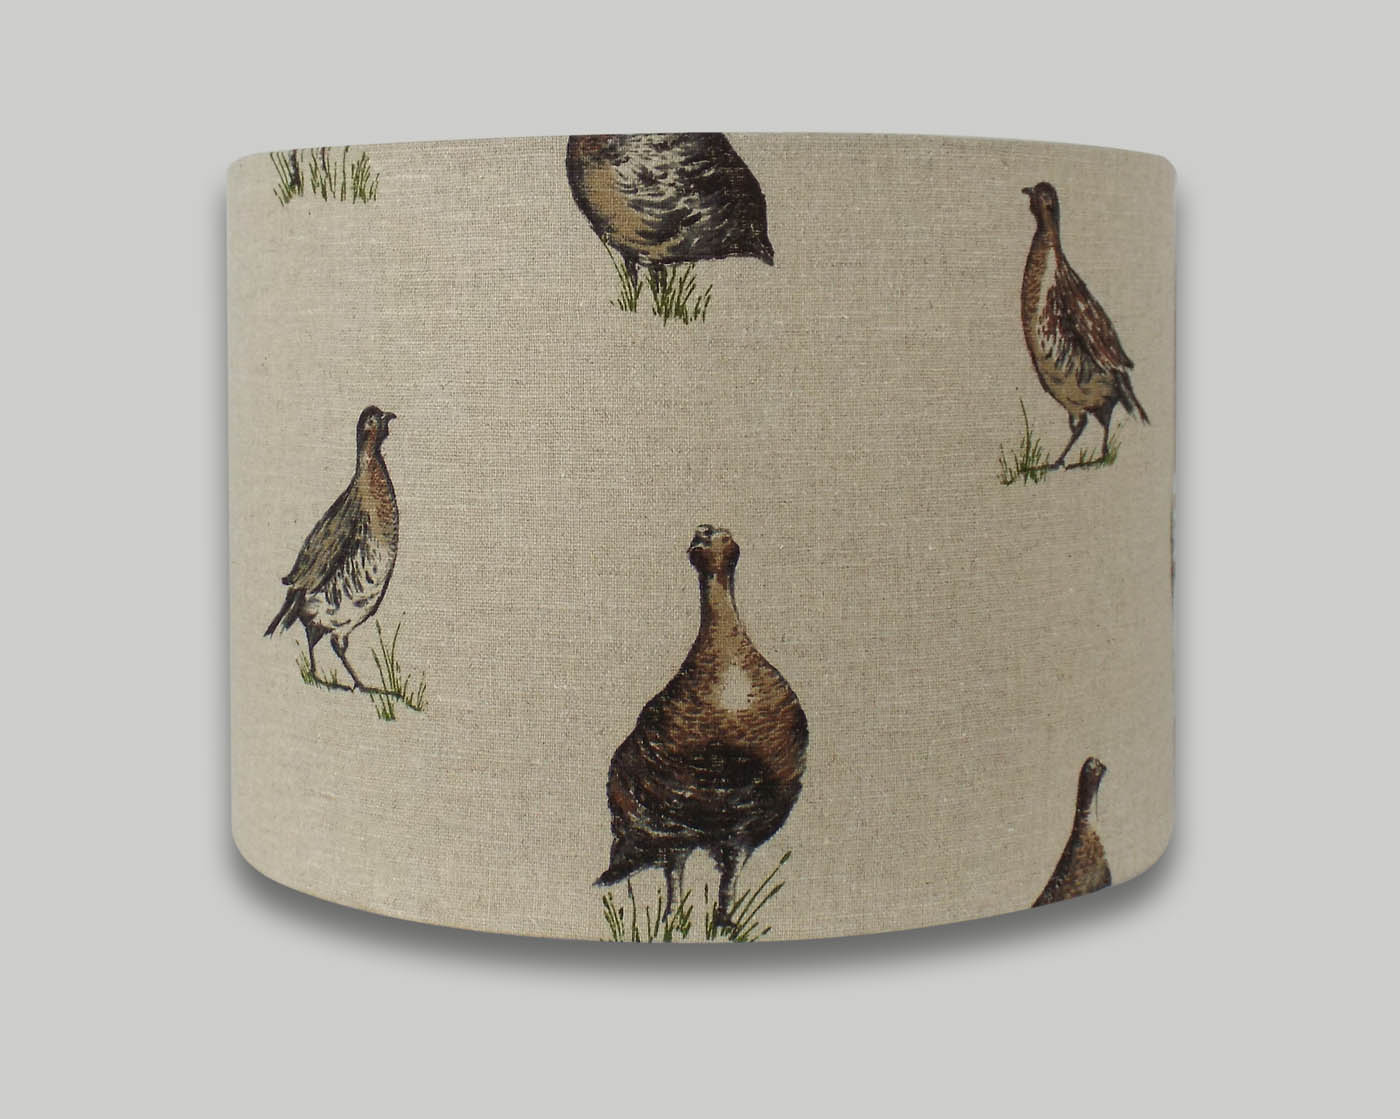 Game Birds Drum Lampshade - THE LAMPSHADE BARN